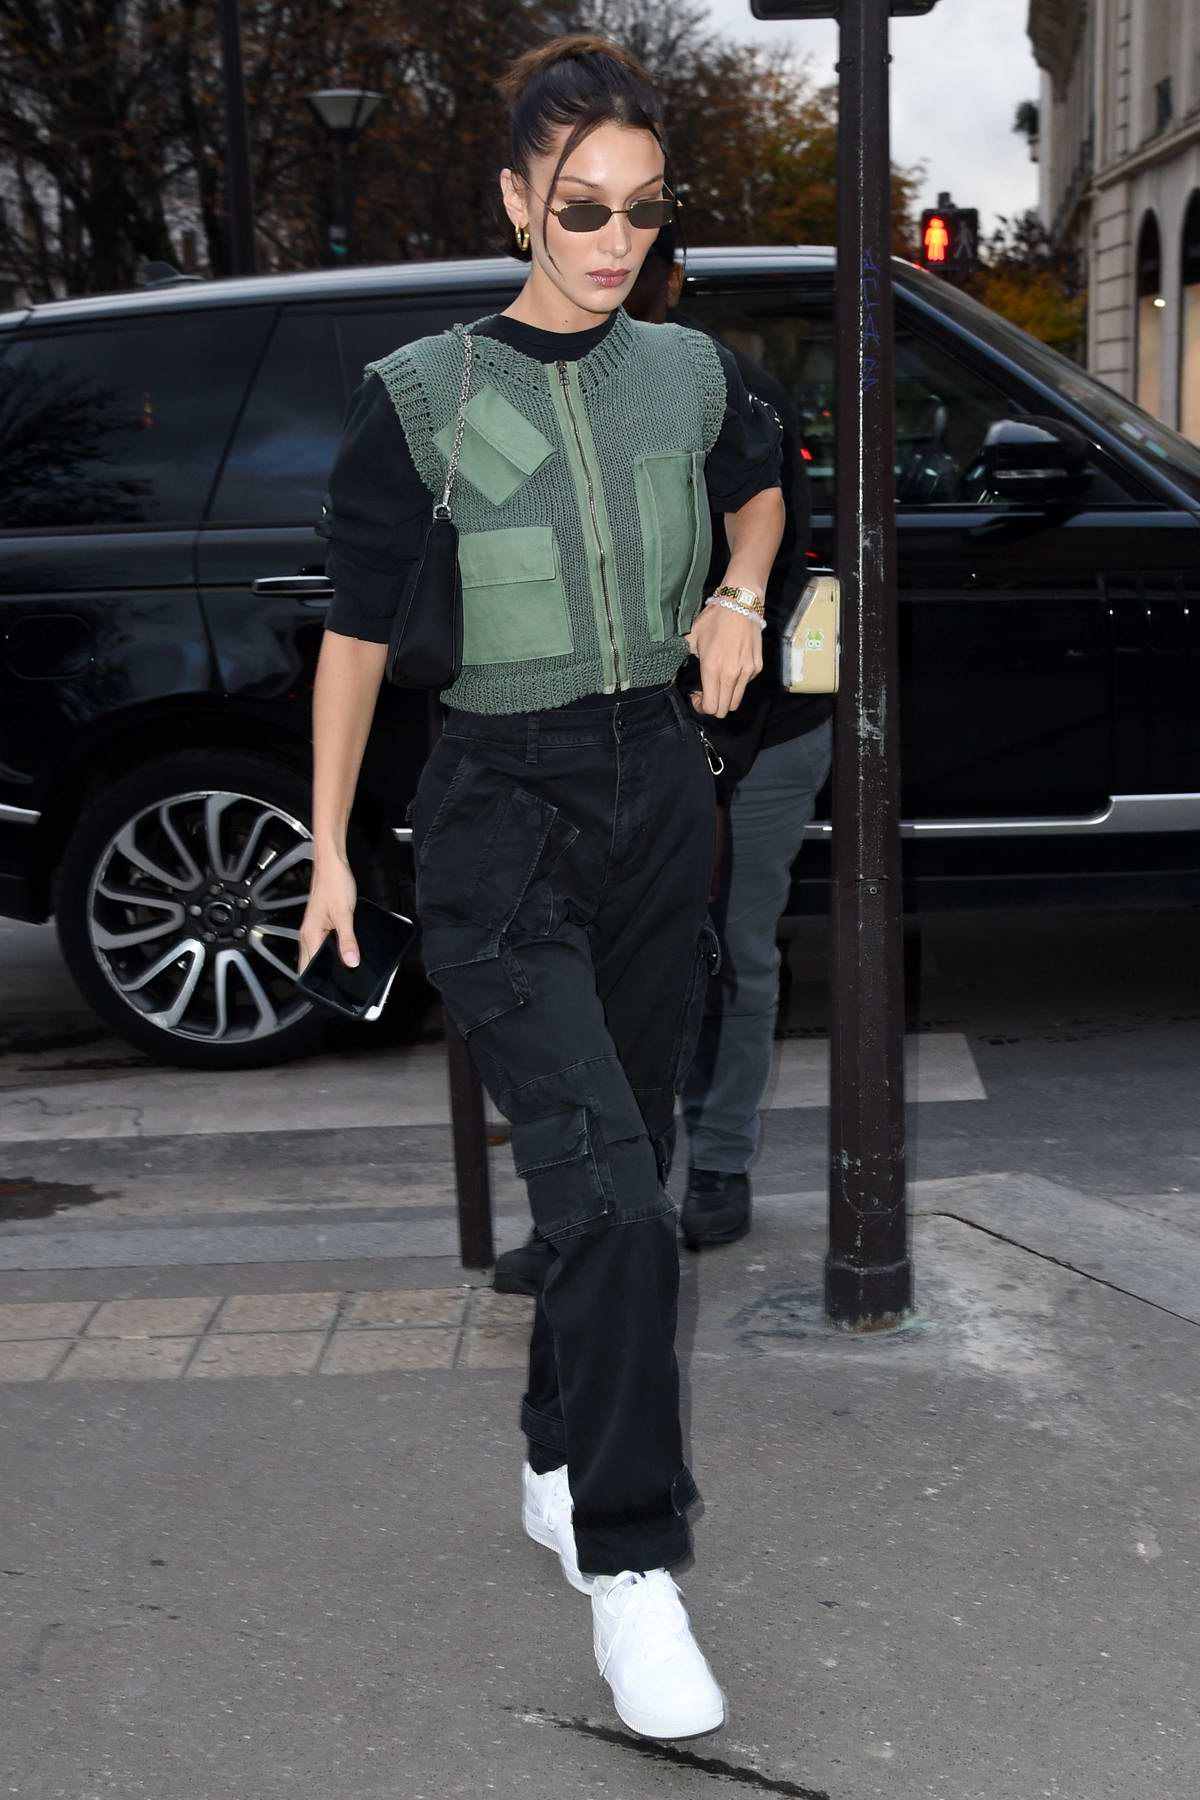 Bella Hadid looks stylish in a green knitted vest with a black top and cargo pants as she steps out in Paris, France